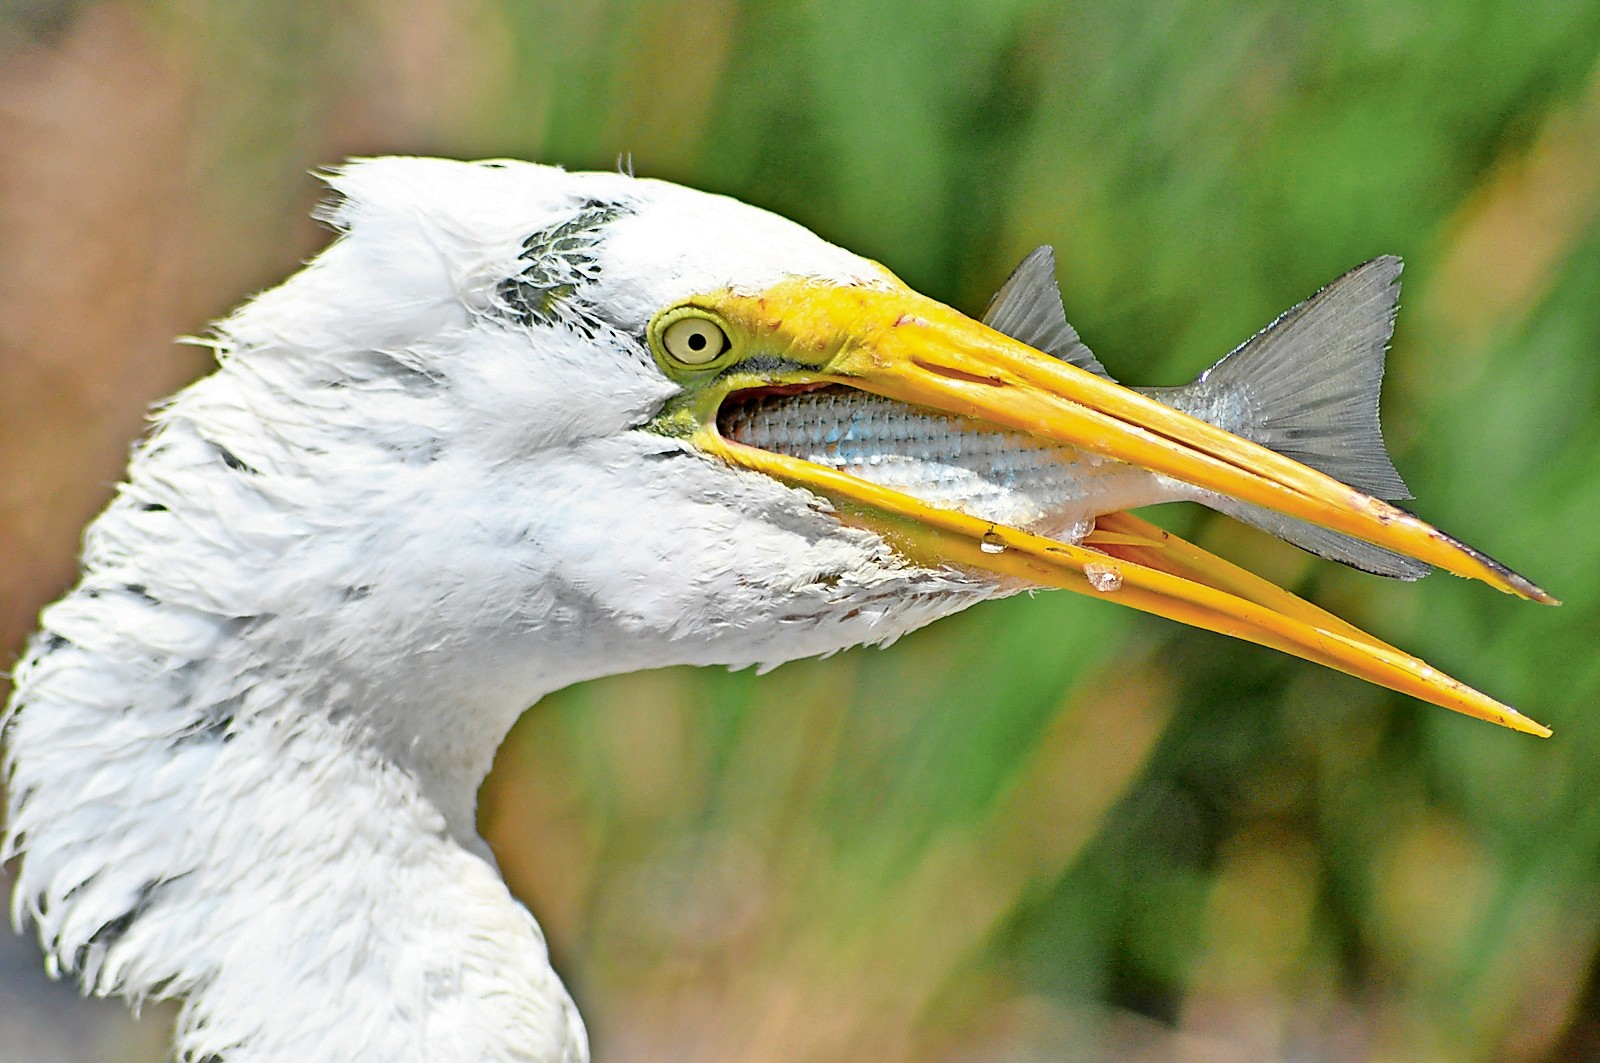 An egret, pictured in 2010, digested a whole fish in one gulp.